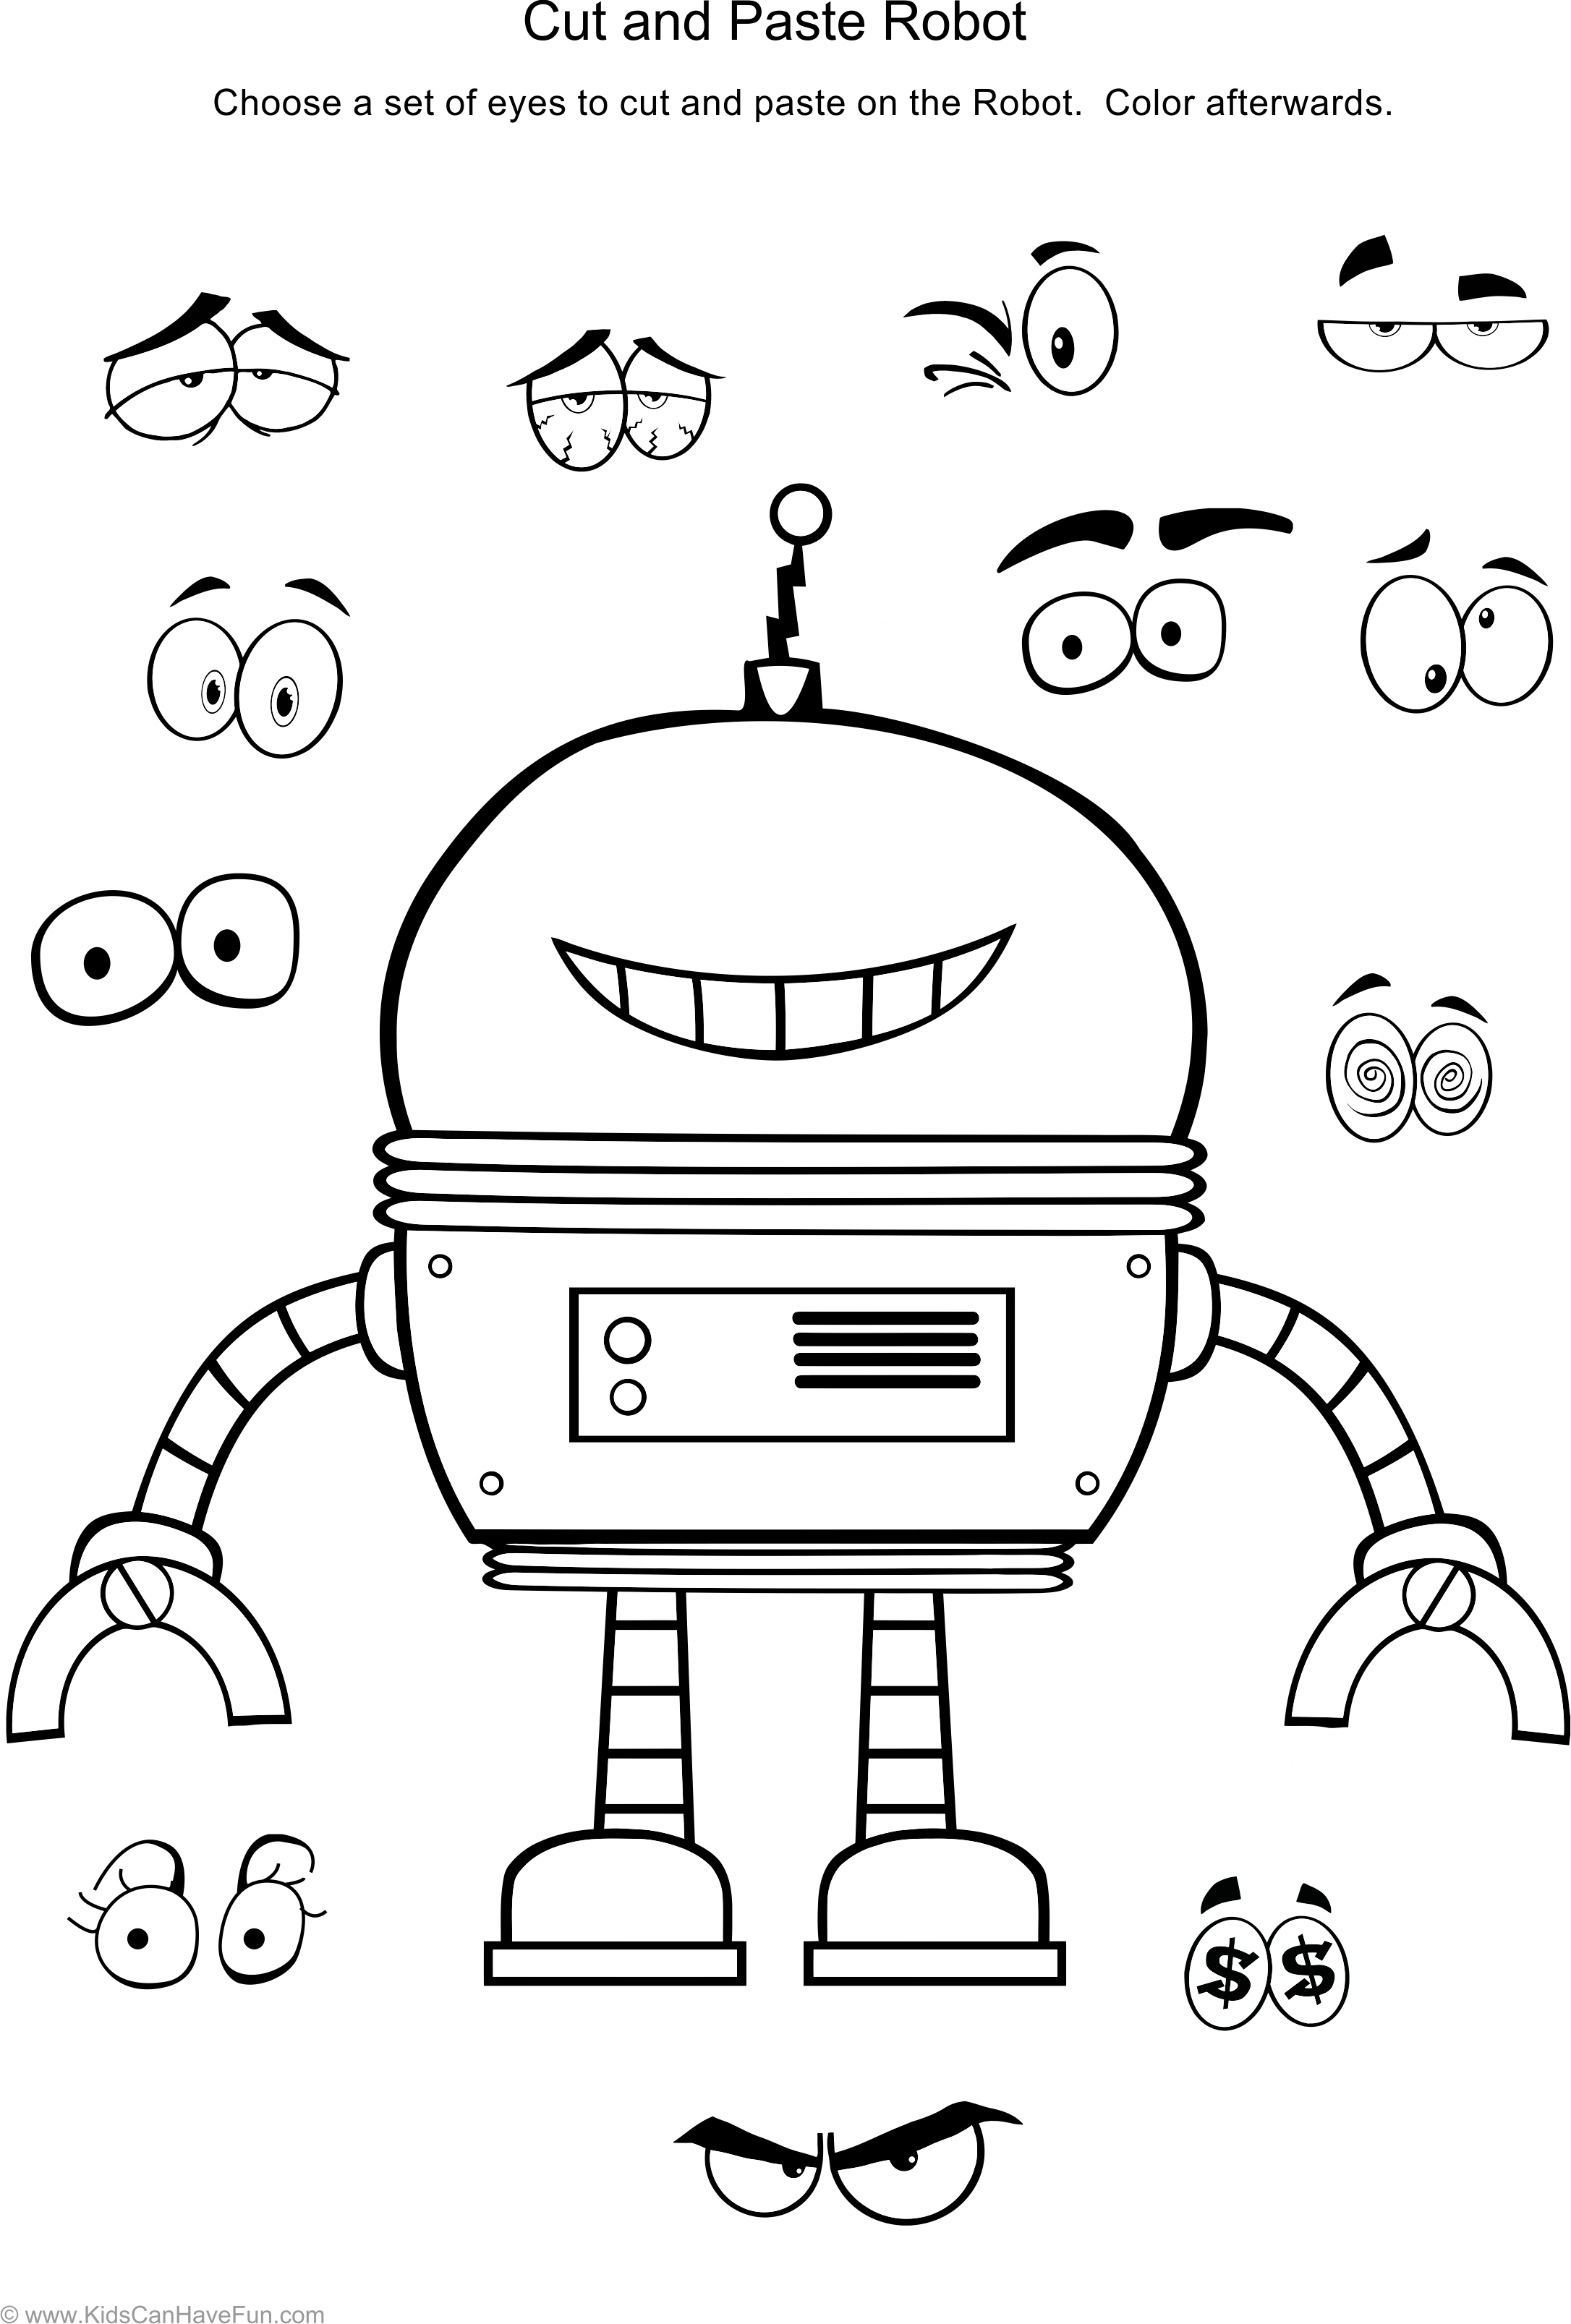 Cut And Paste Robot Worksheet Dscanhavefun